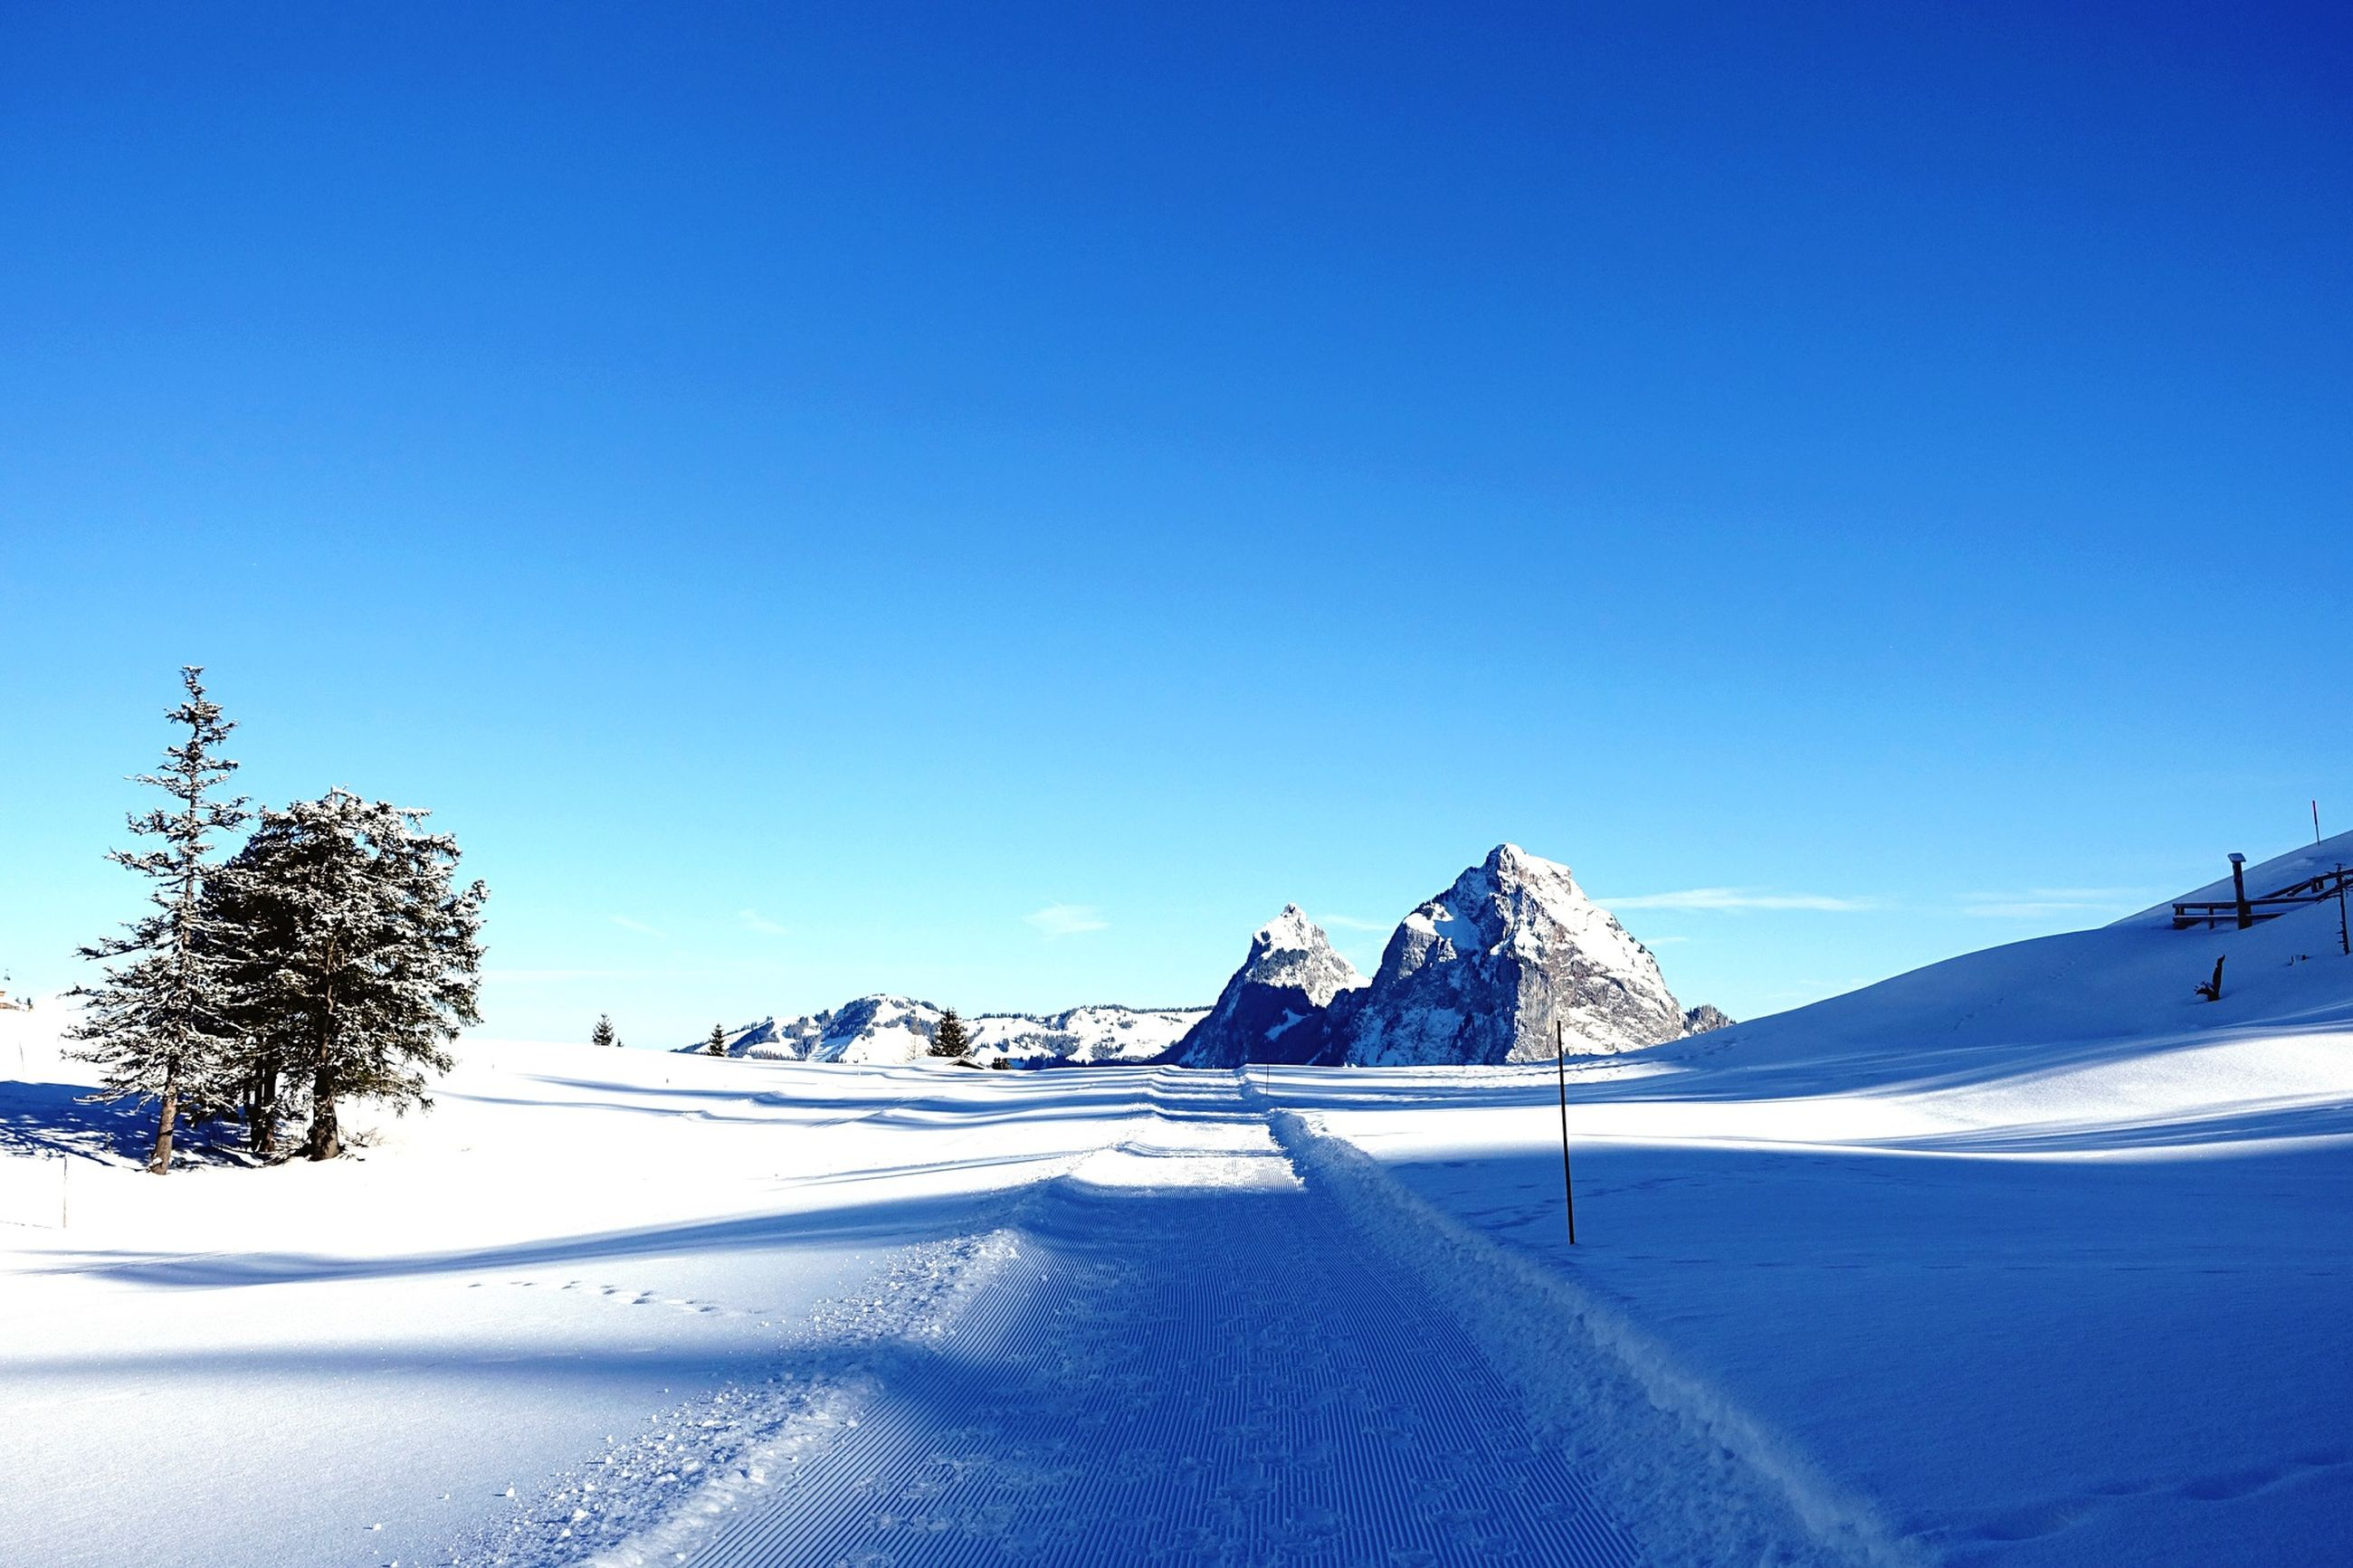 snow, winter, cold temperature, season, clear sky, blue, copy space, tranquil scene, landscape, tranquility, mountain, covering, weather, scenics, beauty in nature, nature, snowcapped mountain, white color, snow covered, frozen